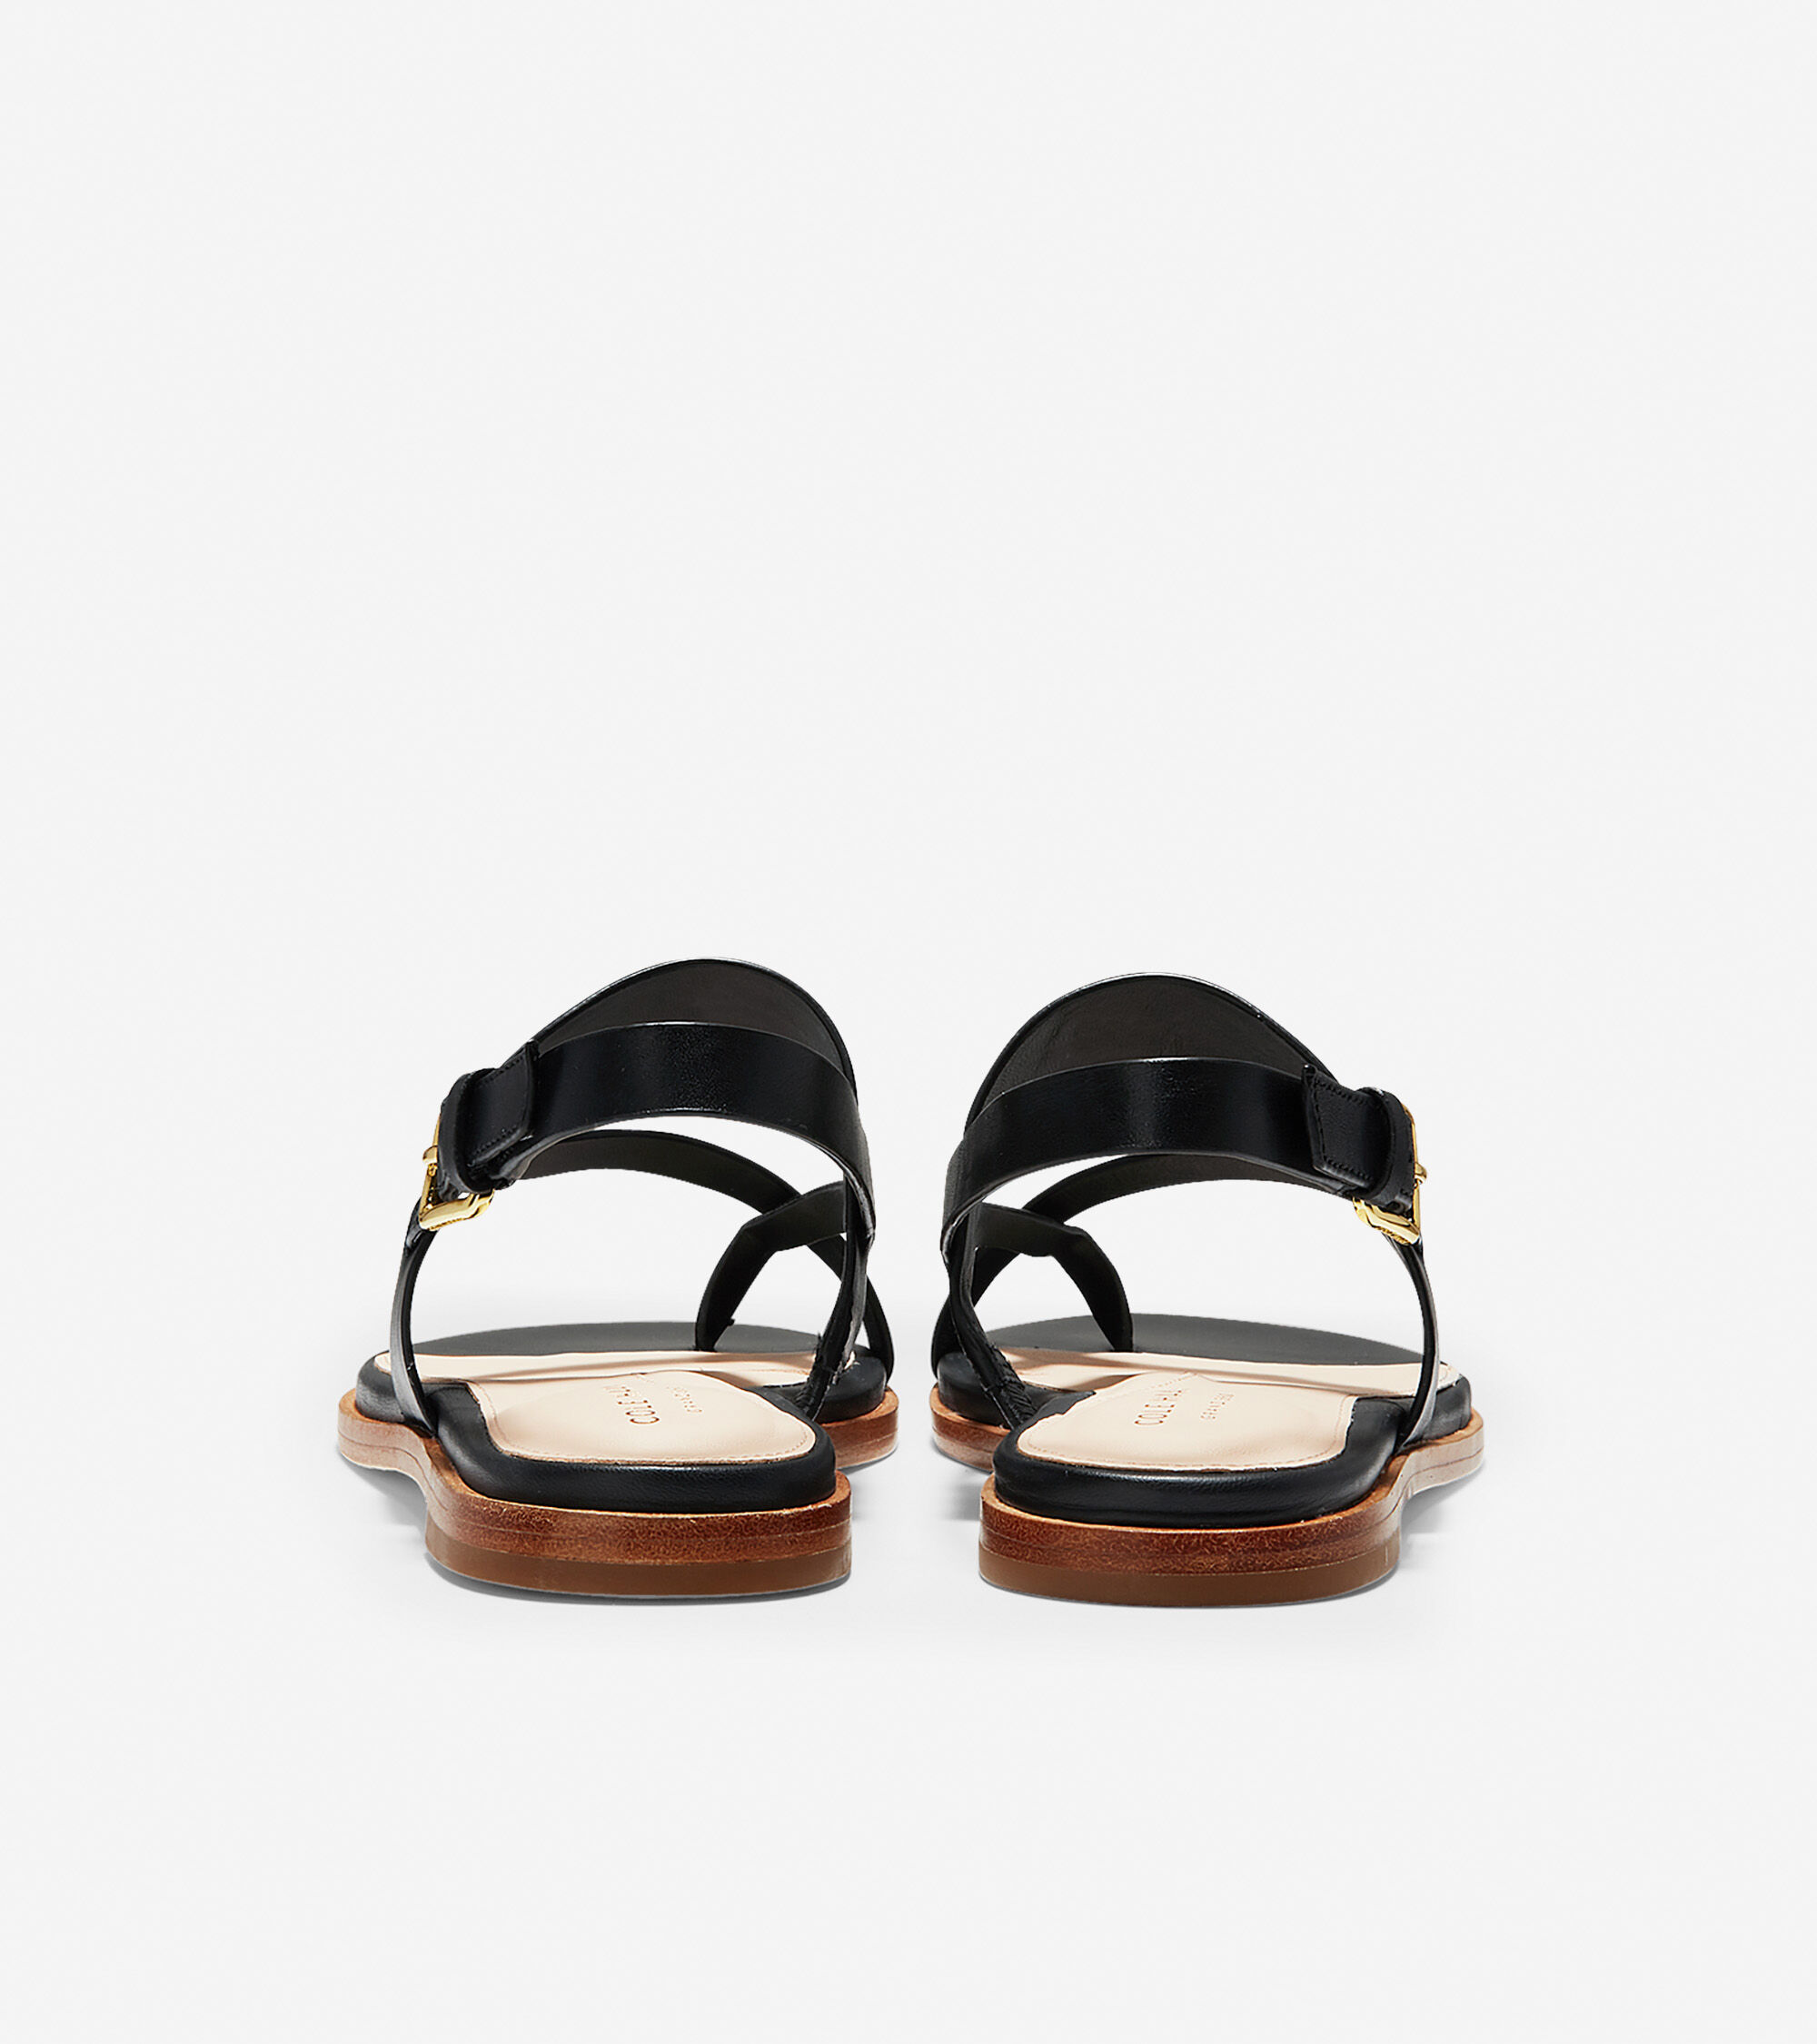 311e9dafd30b Women s Anica Thong Sandals in Black Leather